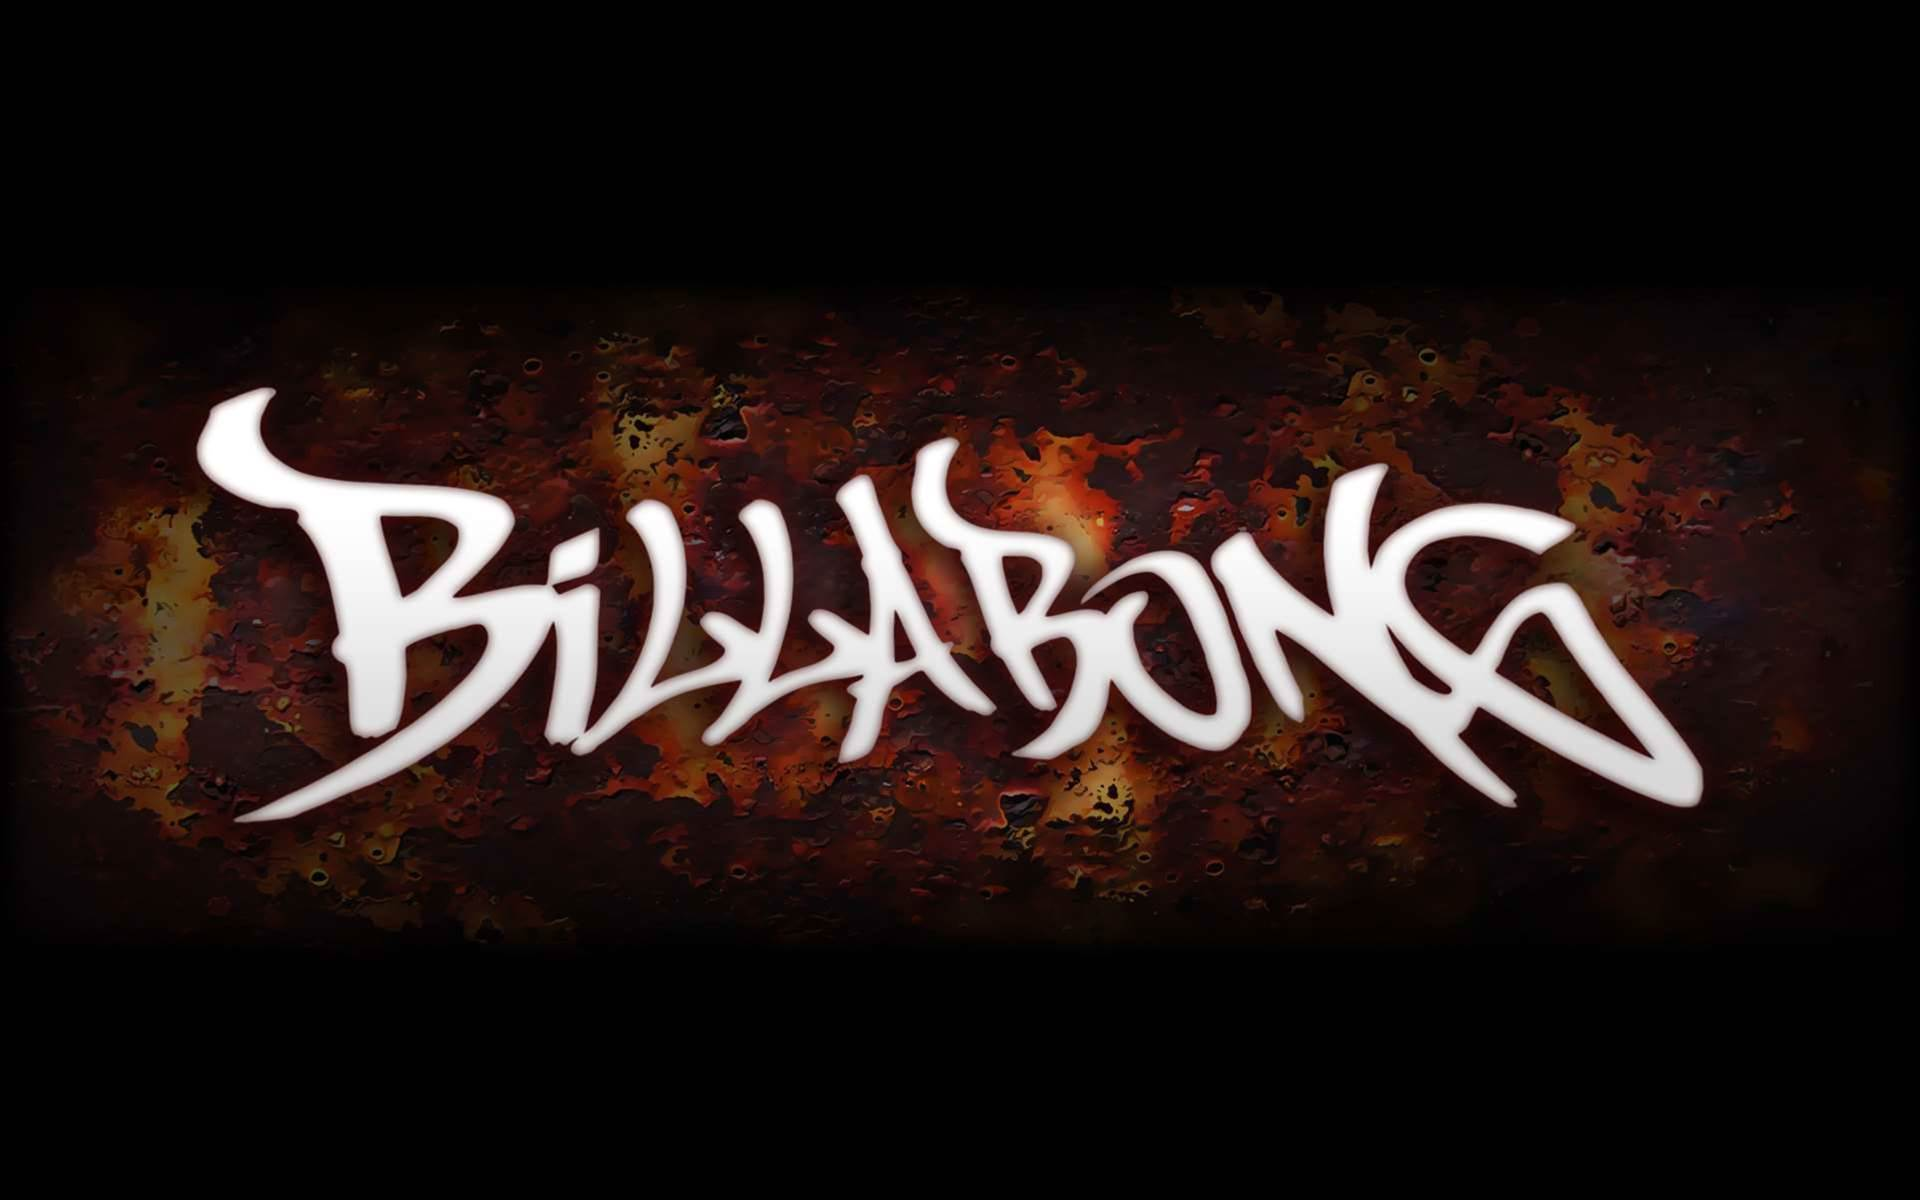 Billabong suffers password breach